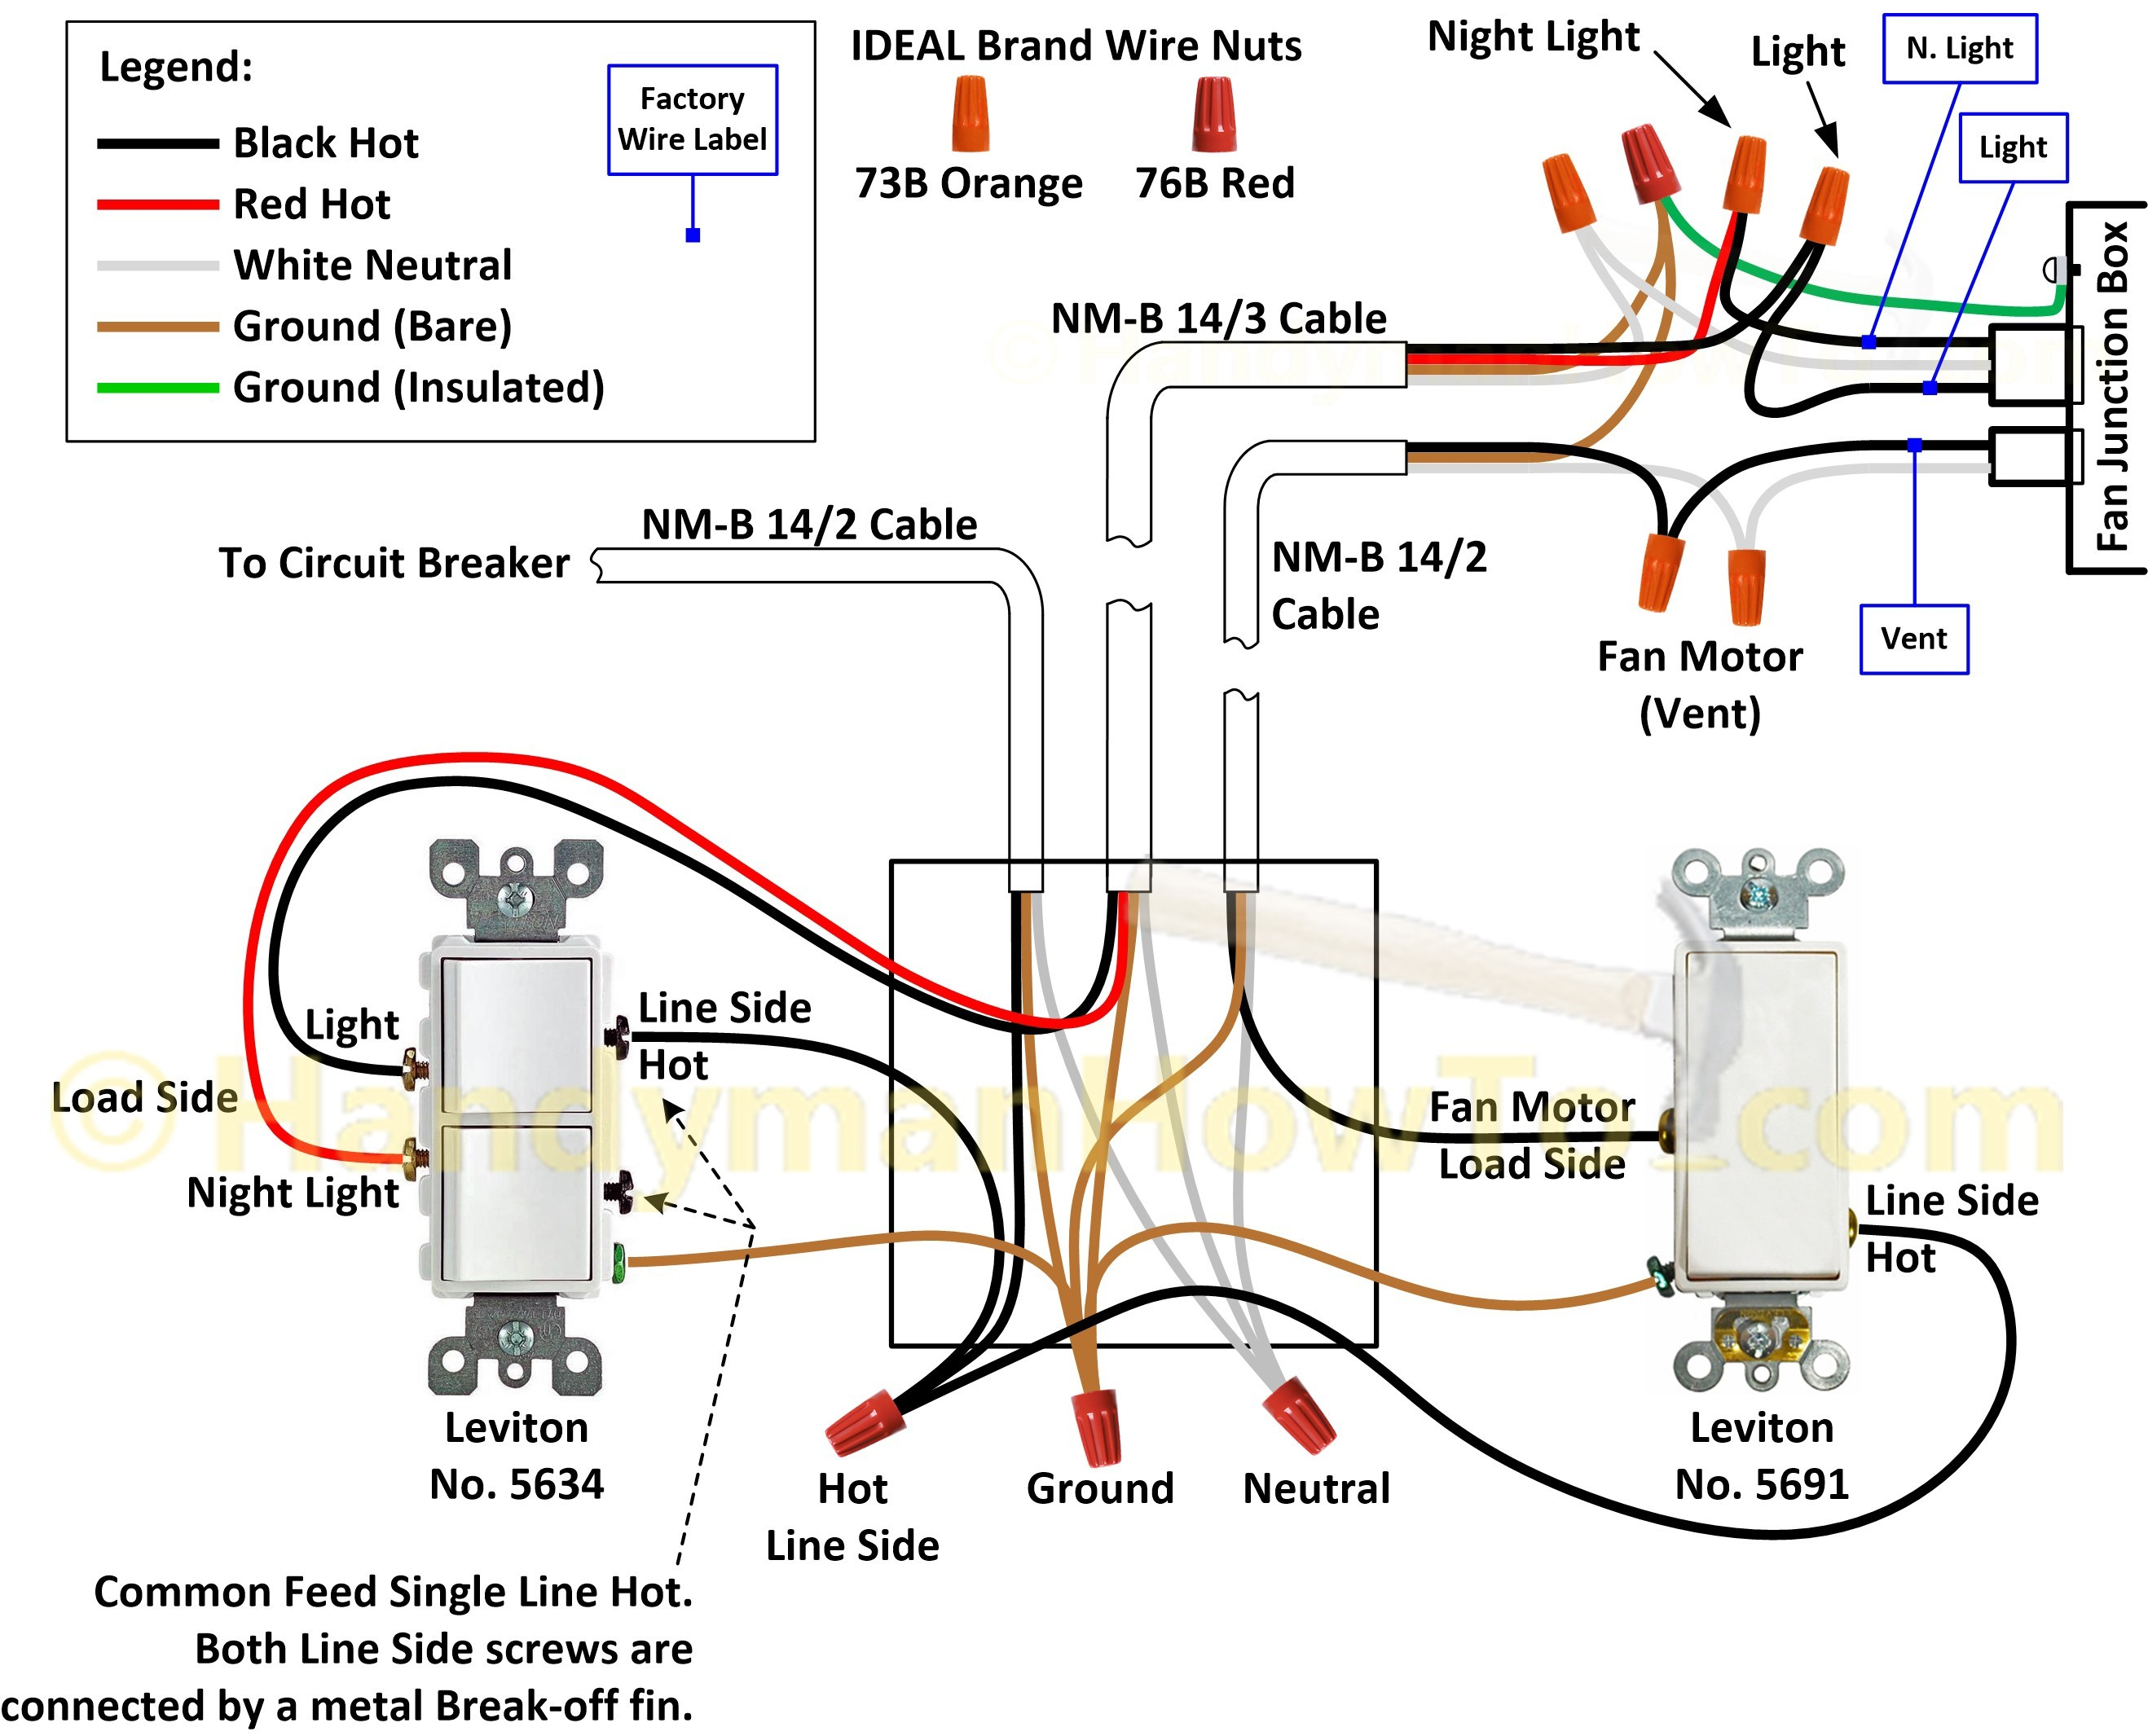 Low Voltage Outdoor Lighting Wiring Diagram Luxury Ceiling Fan and Light Switch Wiring Diagram • Ceiling